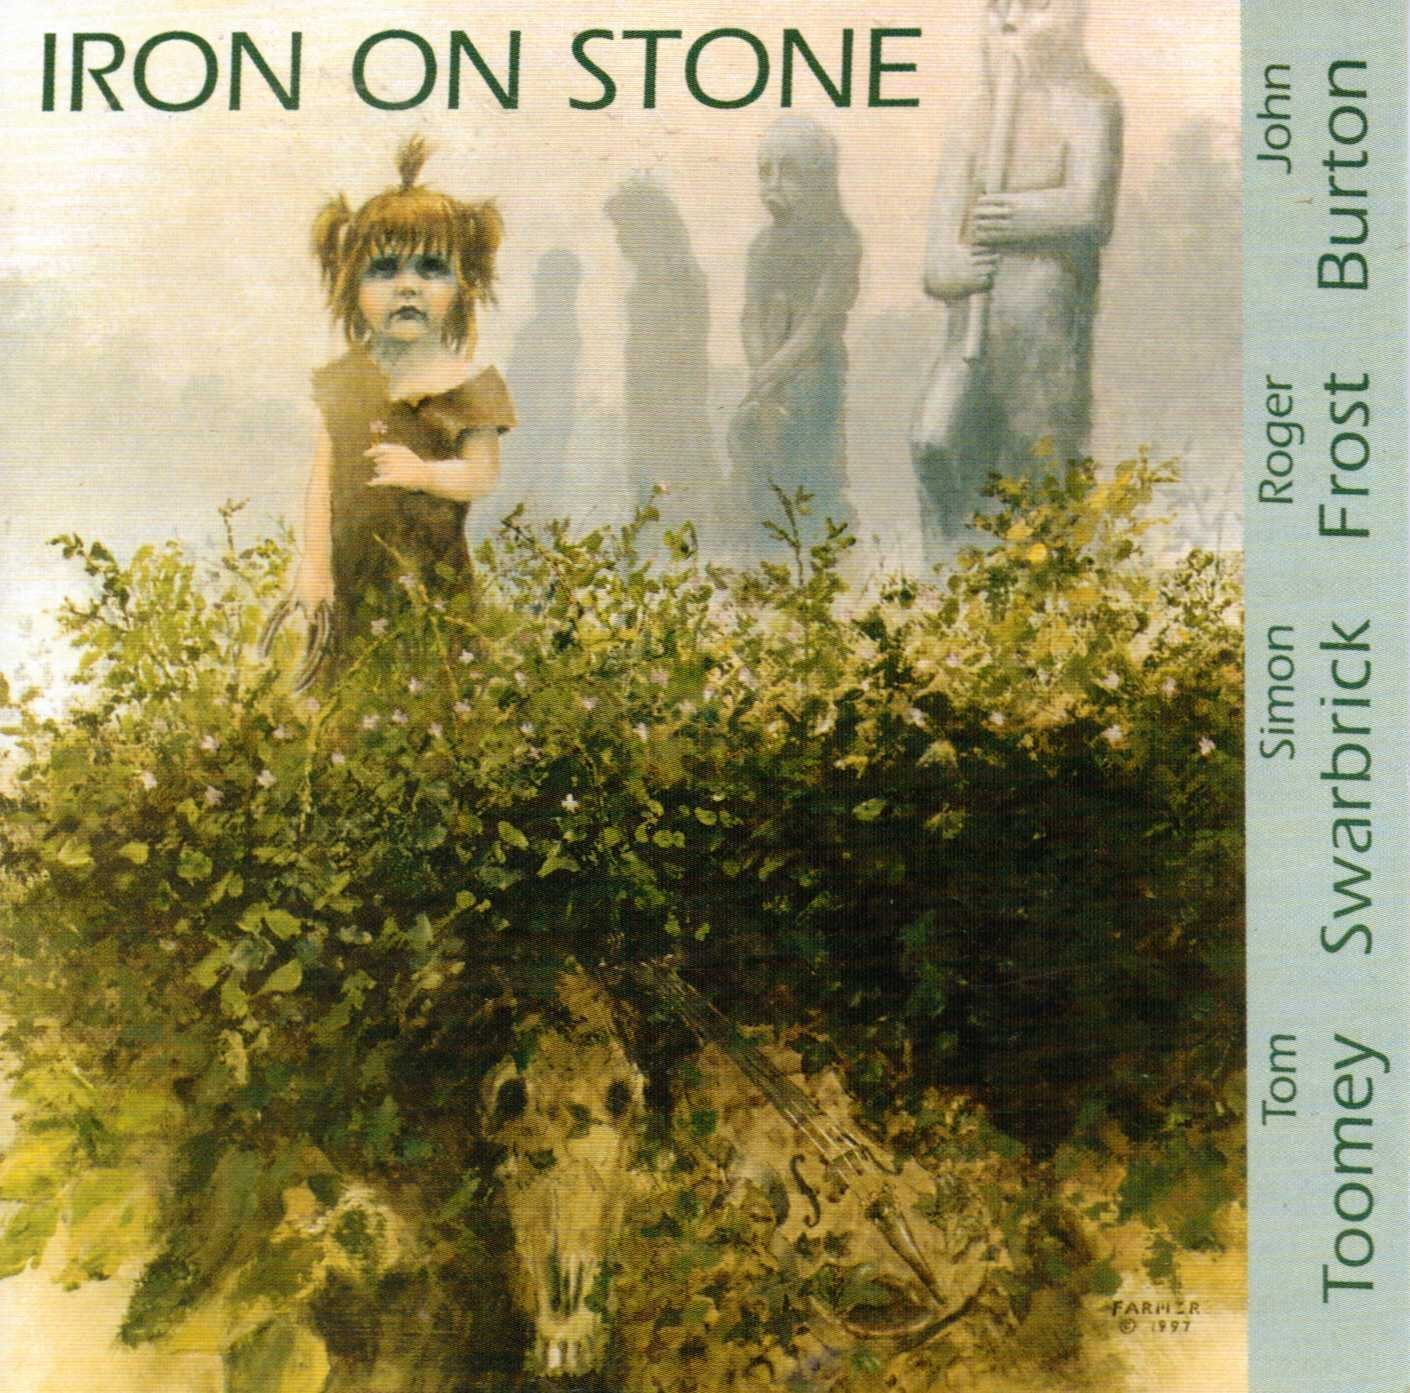 TOOMEY IRON ON STONE CD FRONT